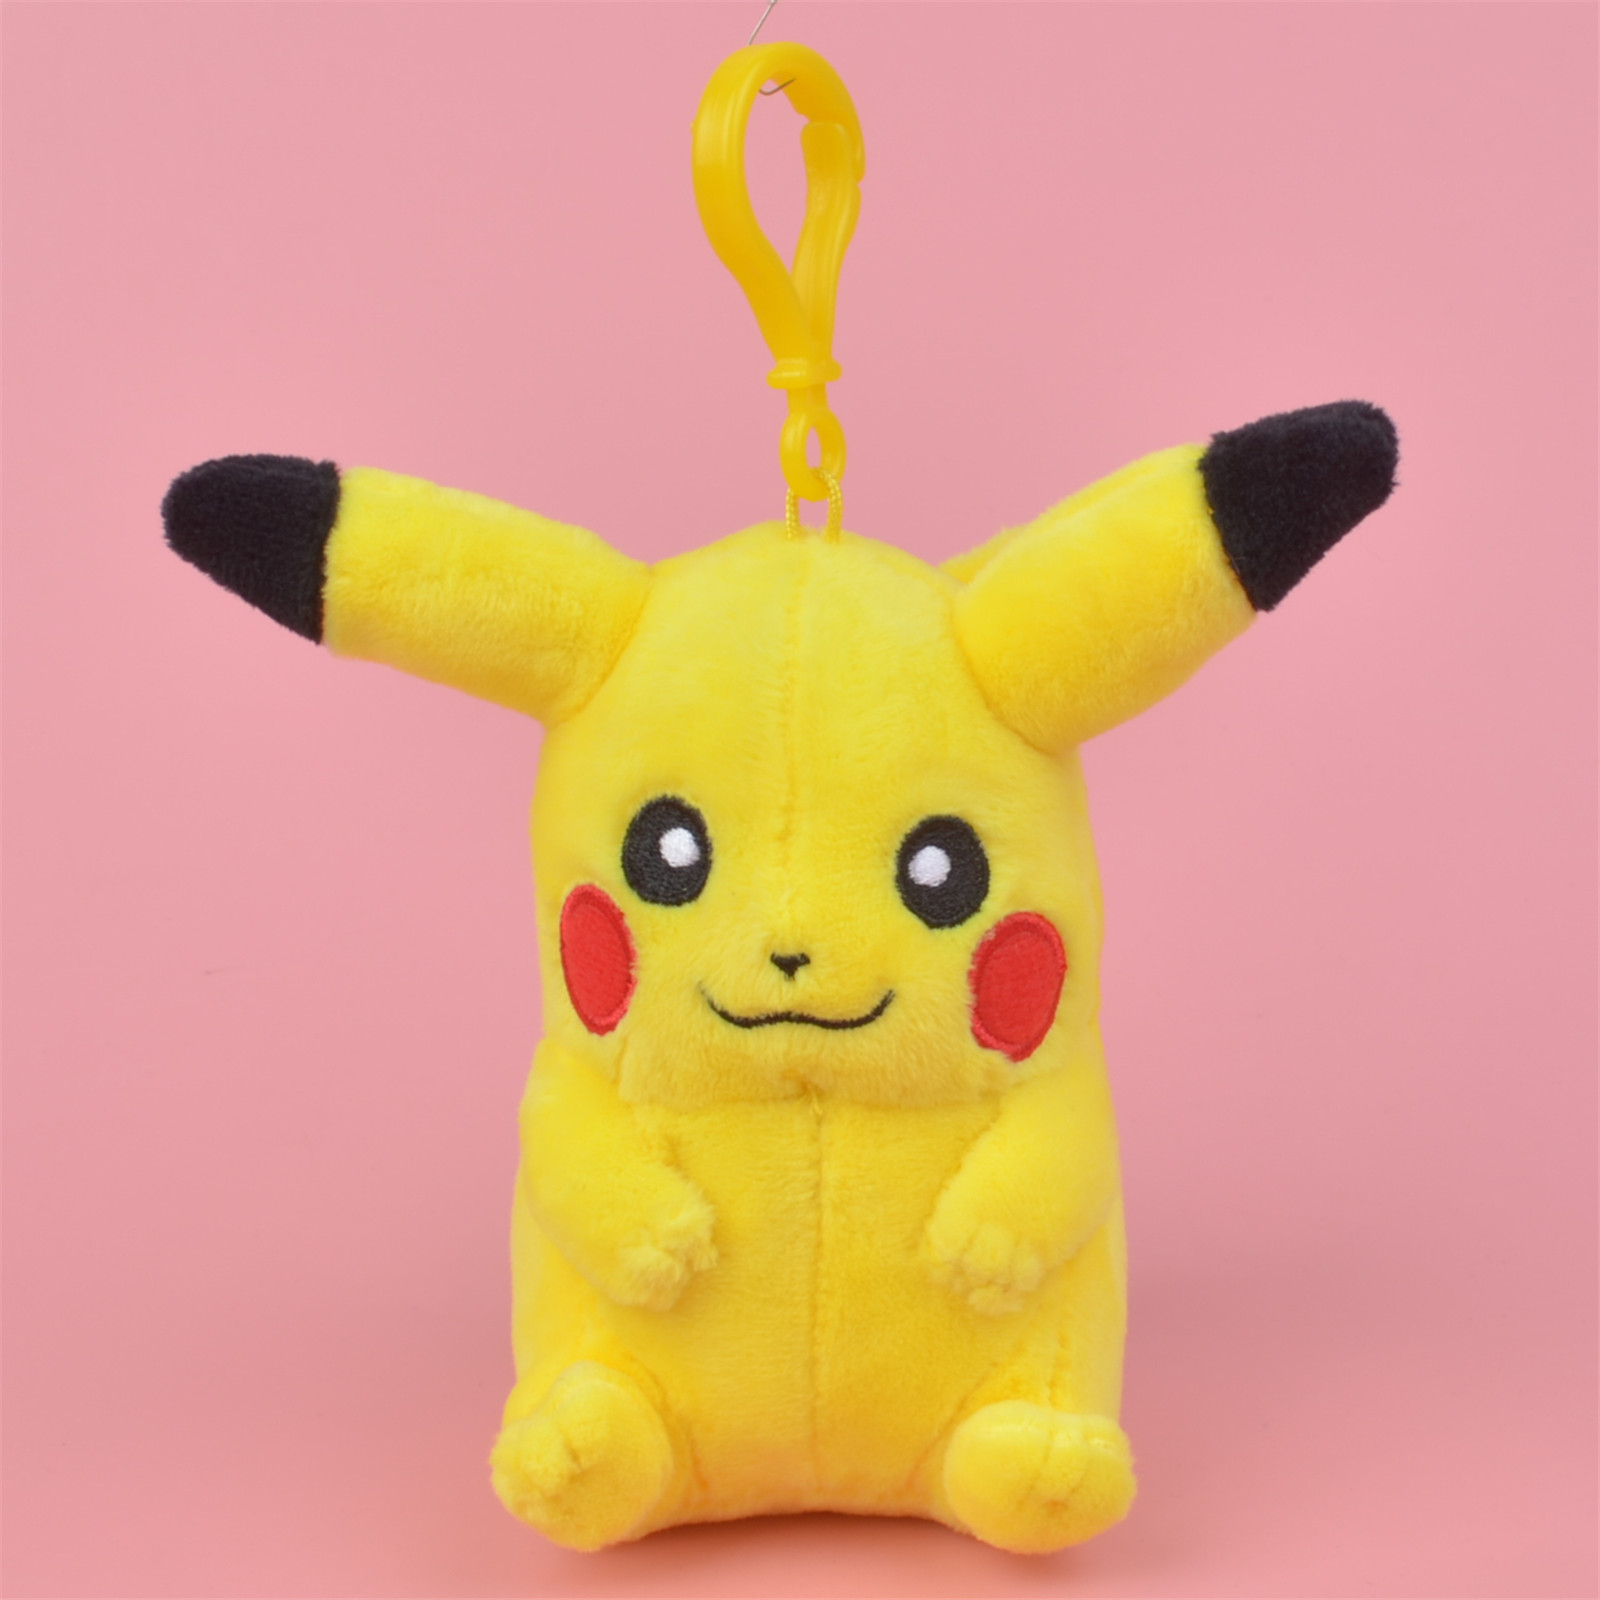 1pcs New Quality Height Stuffed Toy Cute Pikachu Plush Toy Doll Cat Stuffed Plush Doll Stuffed Animal plush toy doll